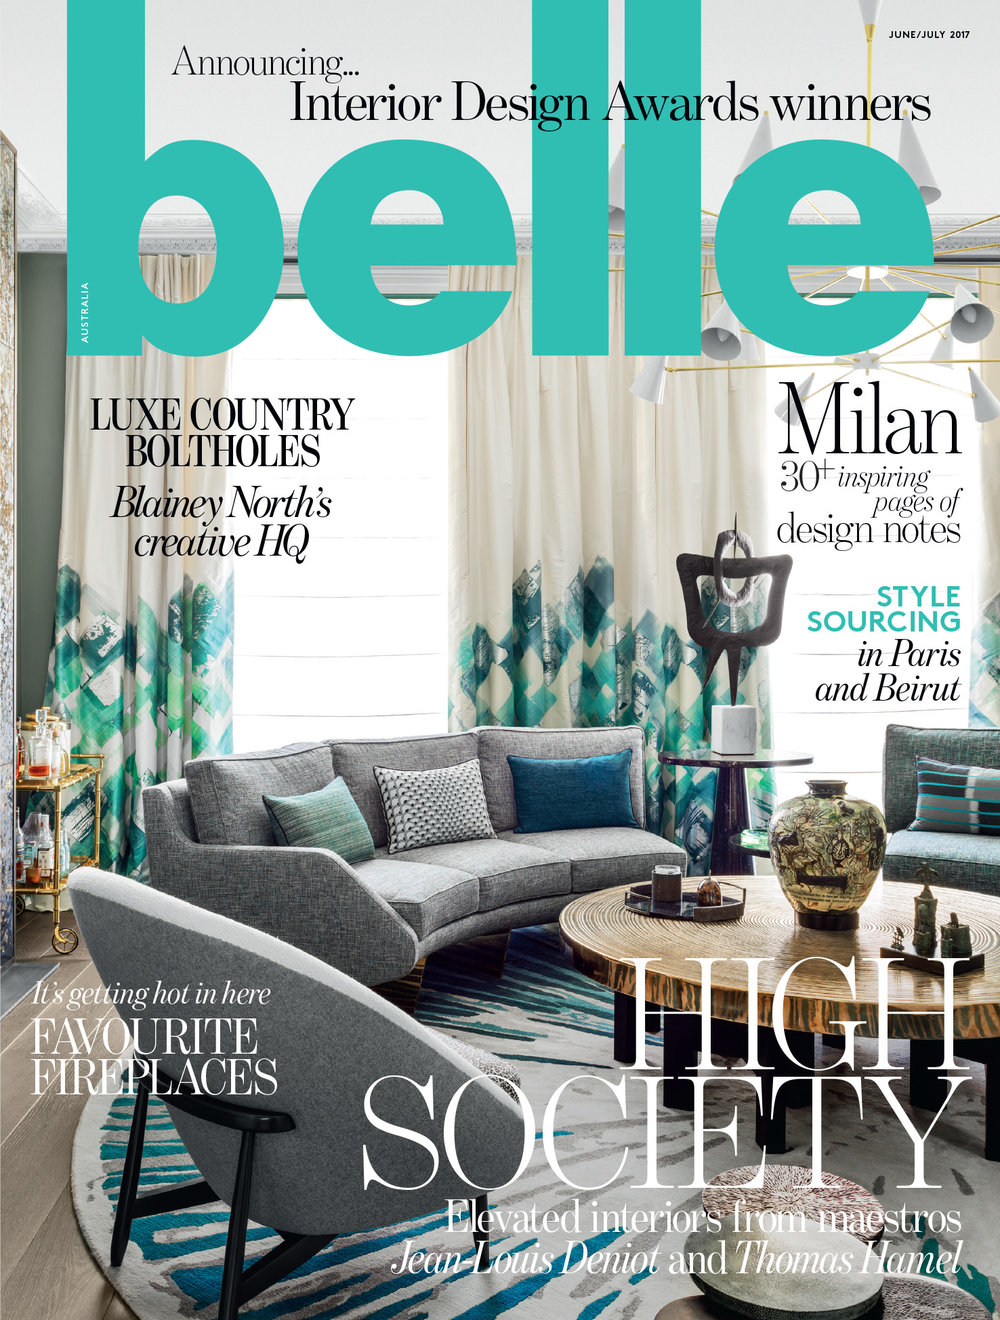 Belle June-July 2017, Cover.jpg